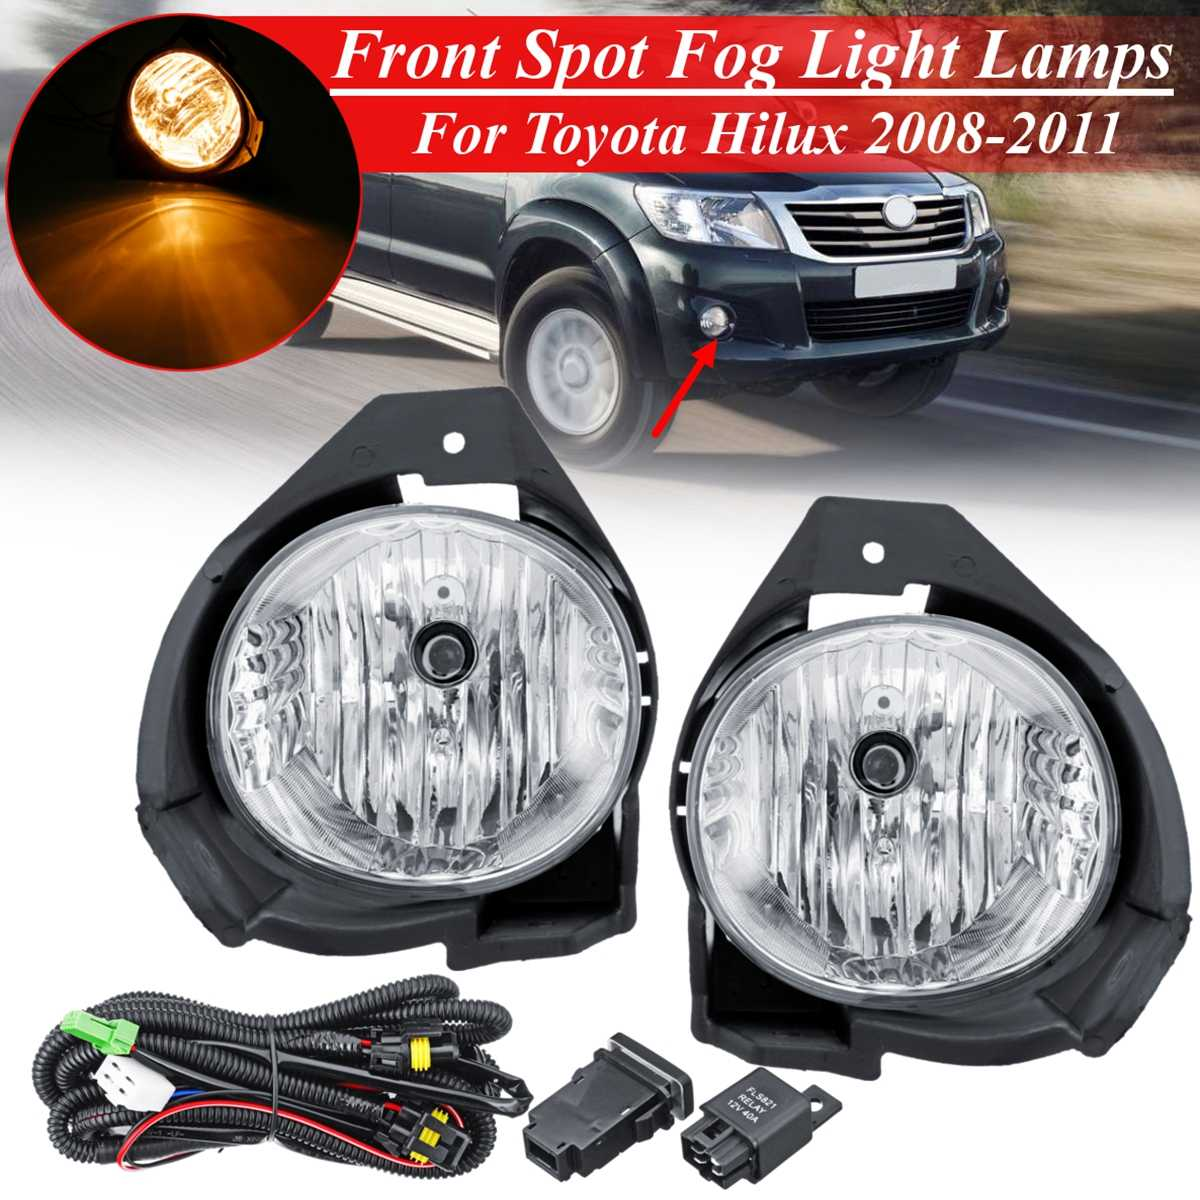 small resolution of 12v fog light for toyota hilux 2008 2009 2010 2011 replacement 1 fog lamp light kit for toyota vigo mk6 sr5 wiring relay harness switch